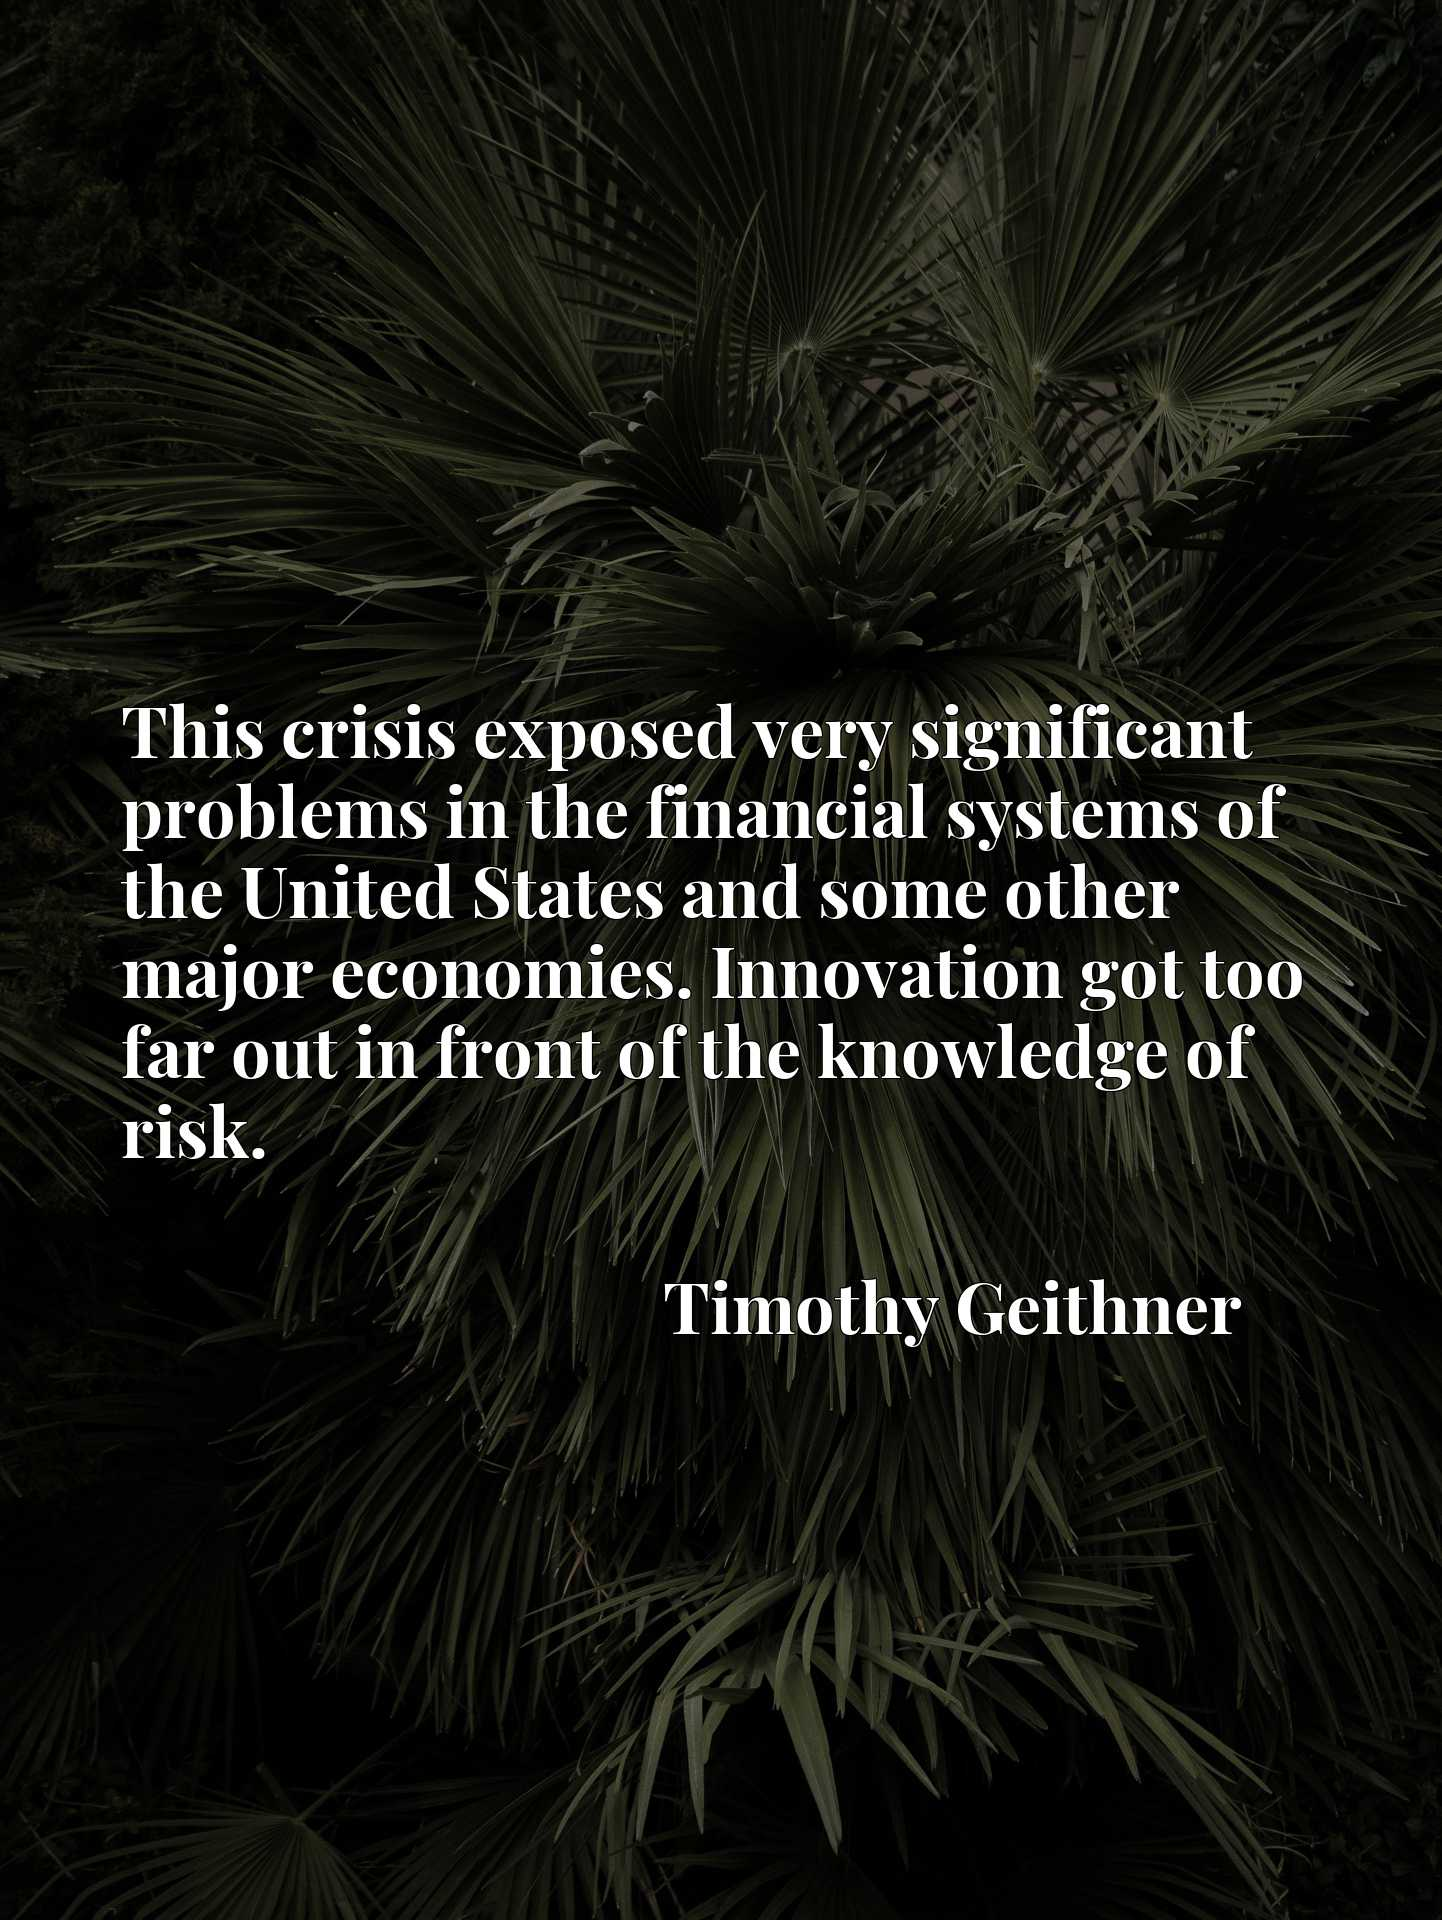 Quote Picture :This crisis exposed very significant problems in the financial systems of the United States and some other major economies. Innovation got too far out in front of the knowledge of risk.